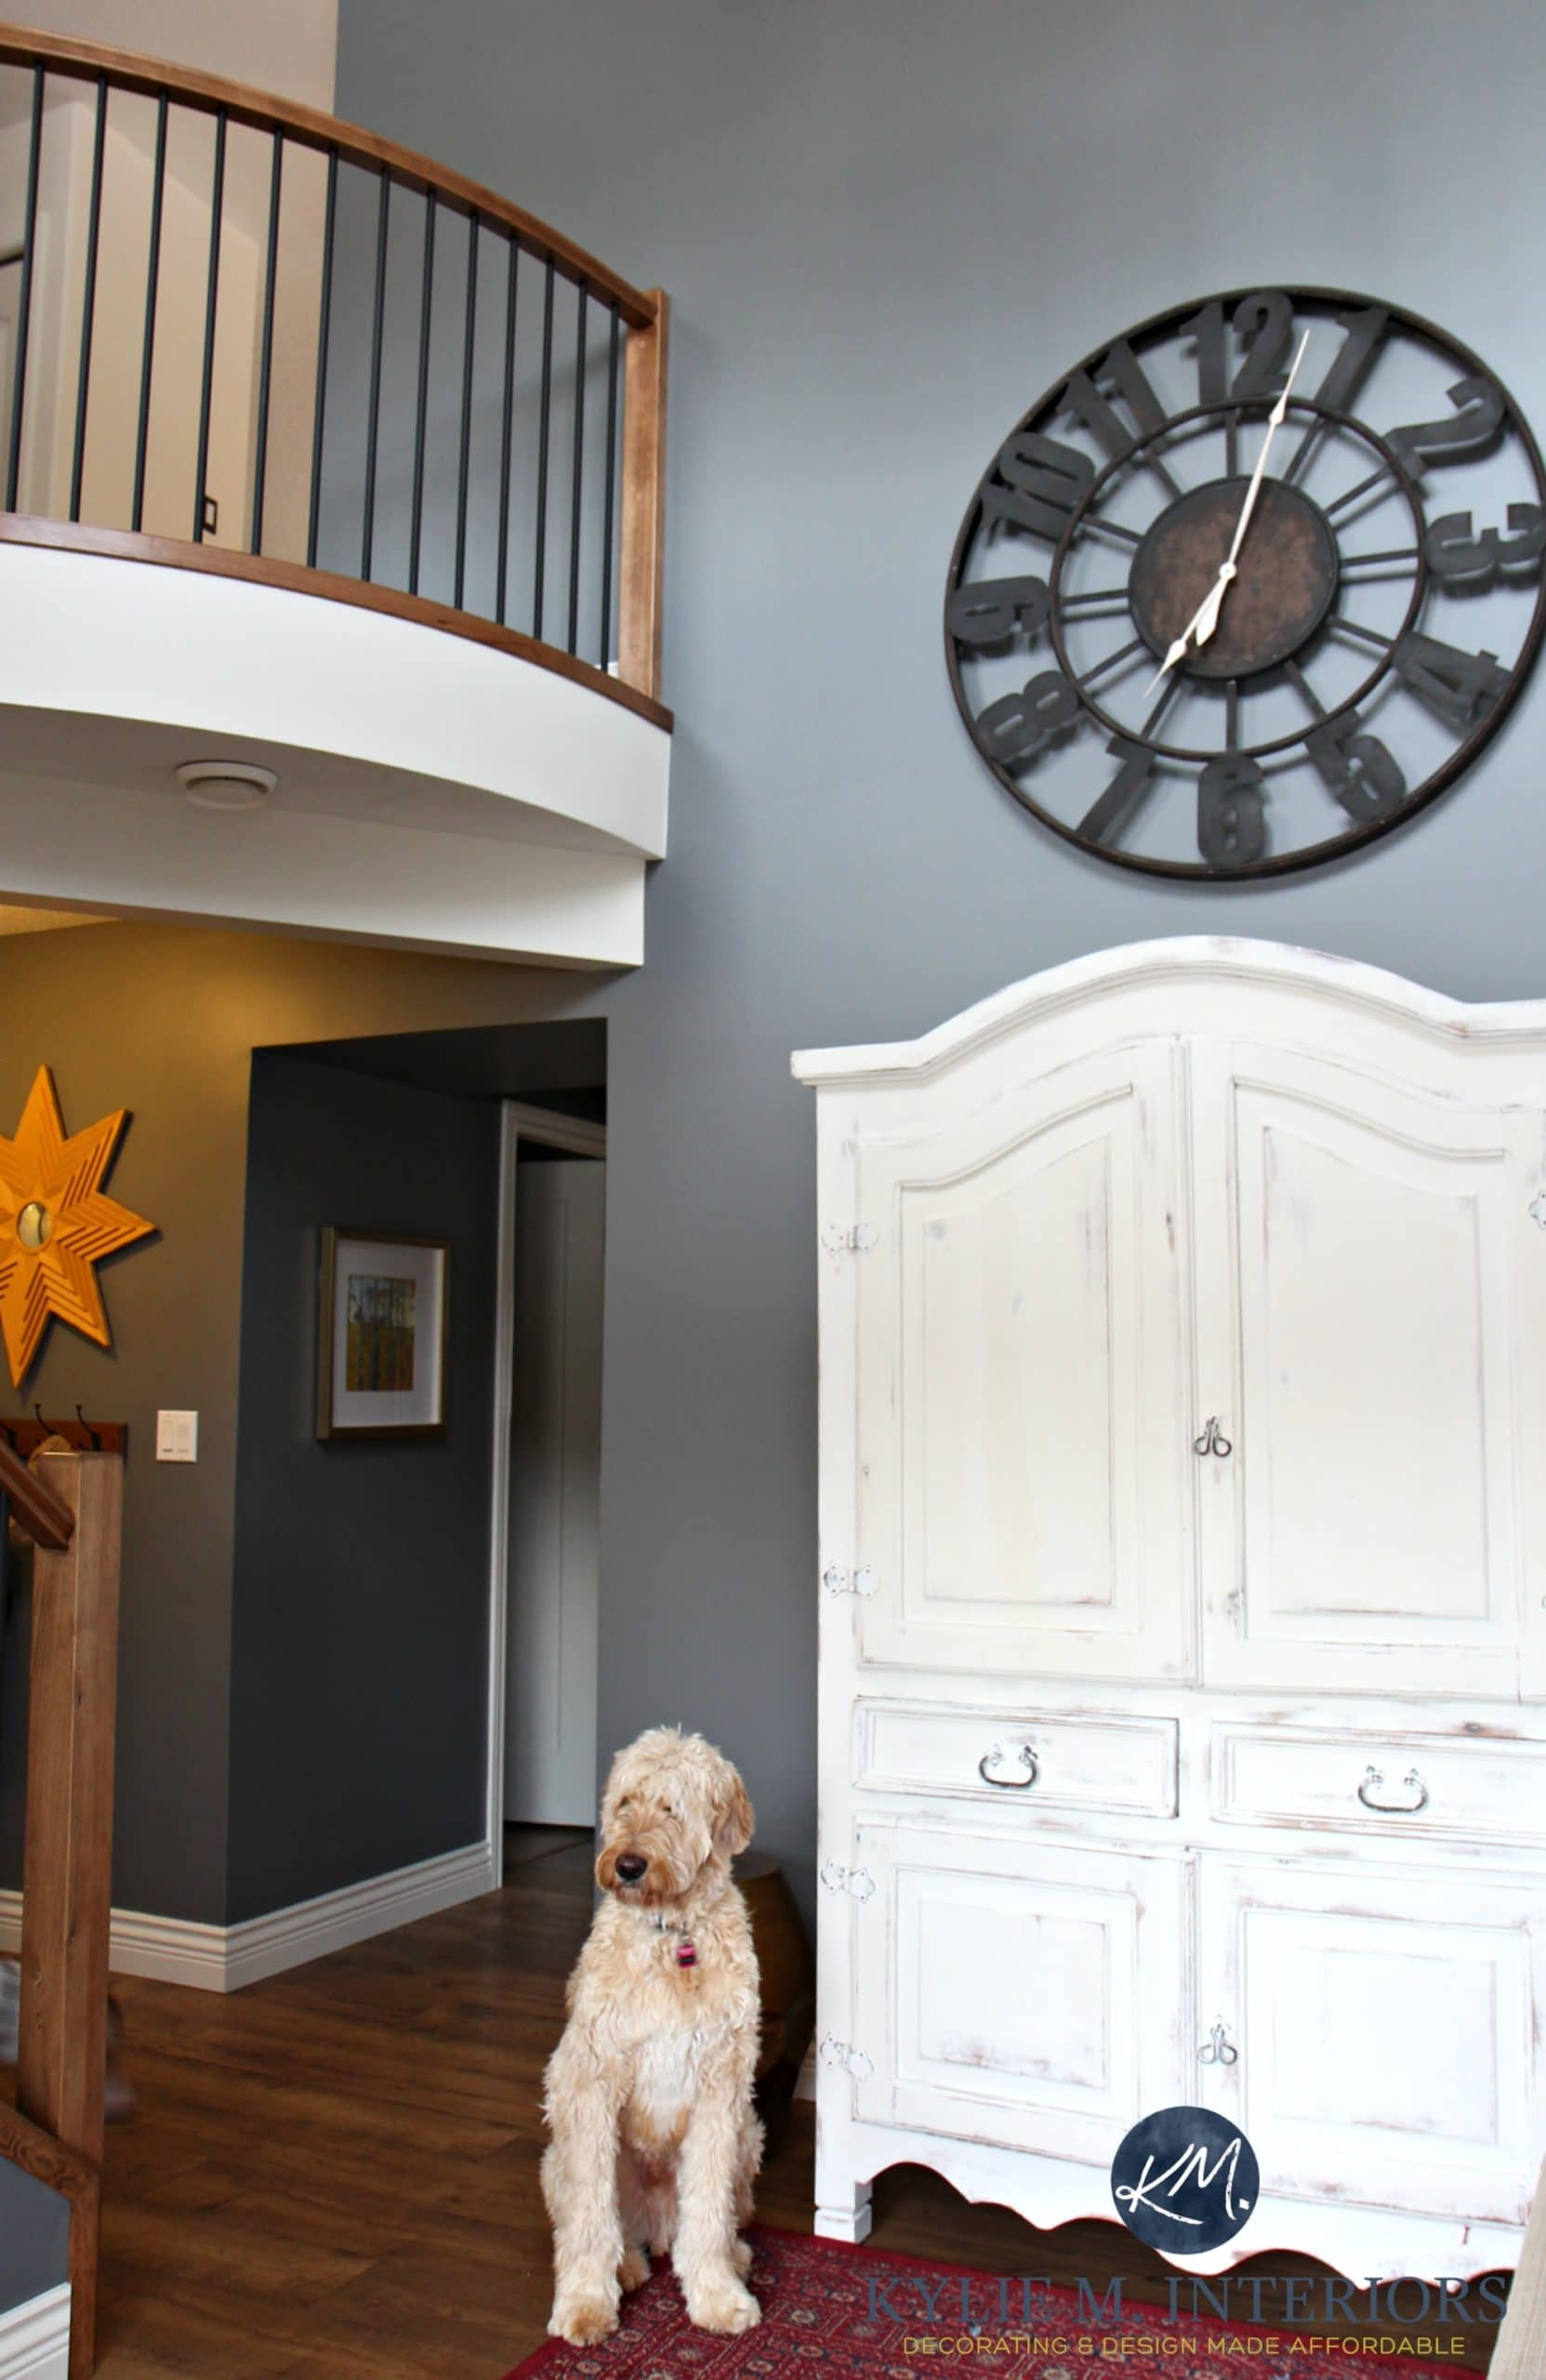 2 Storey Entryway Foyer Stair With Curved Railing Golden Doodle Wood And Metal Railing Benjamin Moore Steel Wool Feature Or Accent Wall By Kylie M Interiors